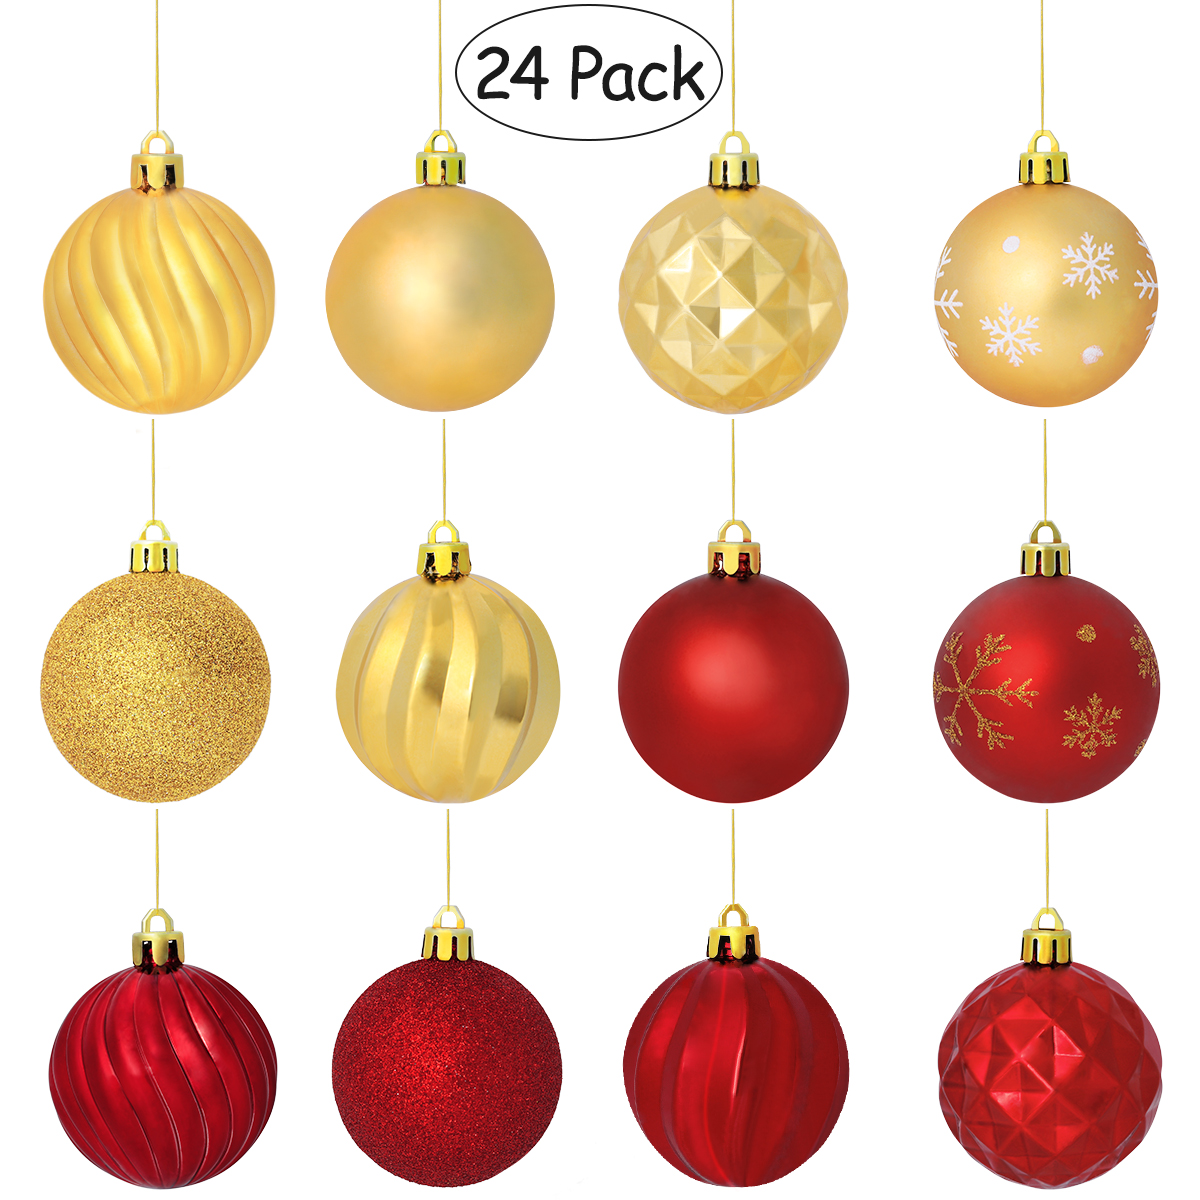 buy popular b6bb1 9de29 US $10.5 38% OFF|24PCS Christmas Ball Ornaments with String Shatterproof  Hanging Small Balls Tree Ornaments Decoration for Party Holiday Wedding-in  ...